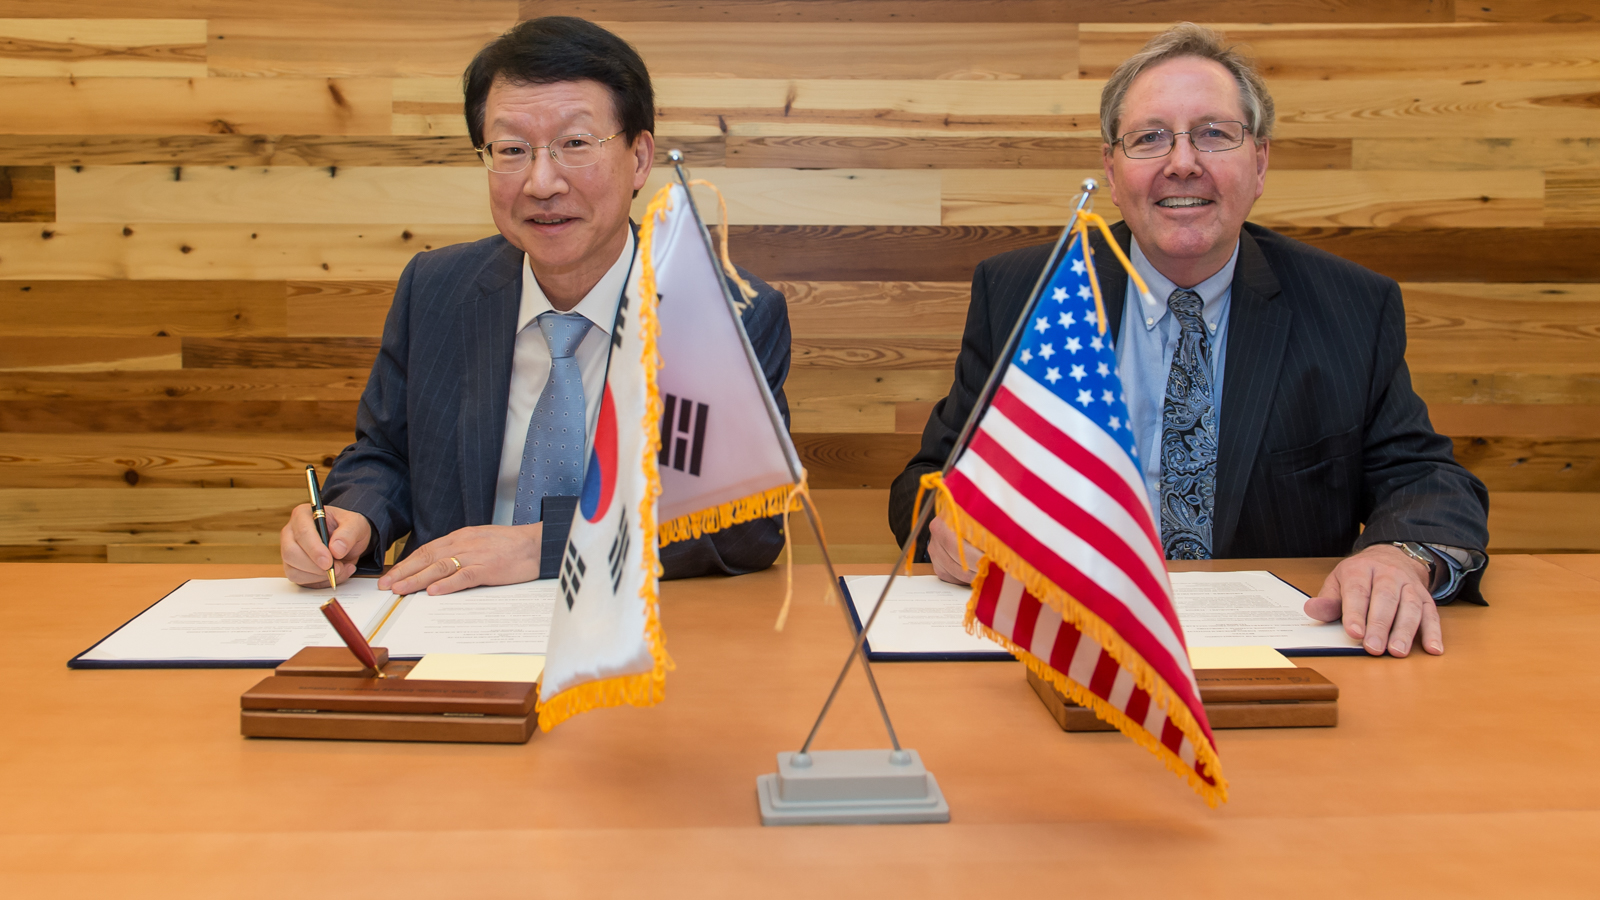 Jong Kyung Kim (left), President of KAERI, and Peter Littlewood, Argonne Laboratory Director, during a signing ceremony at Argonne.